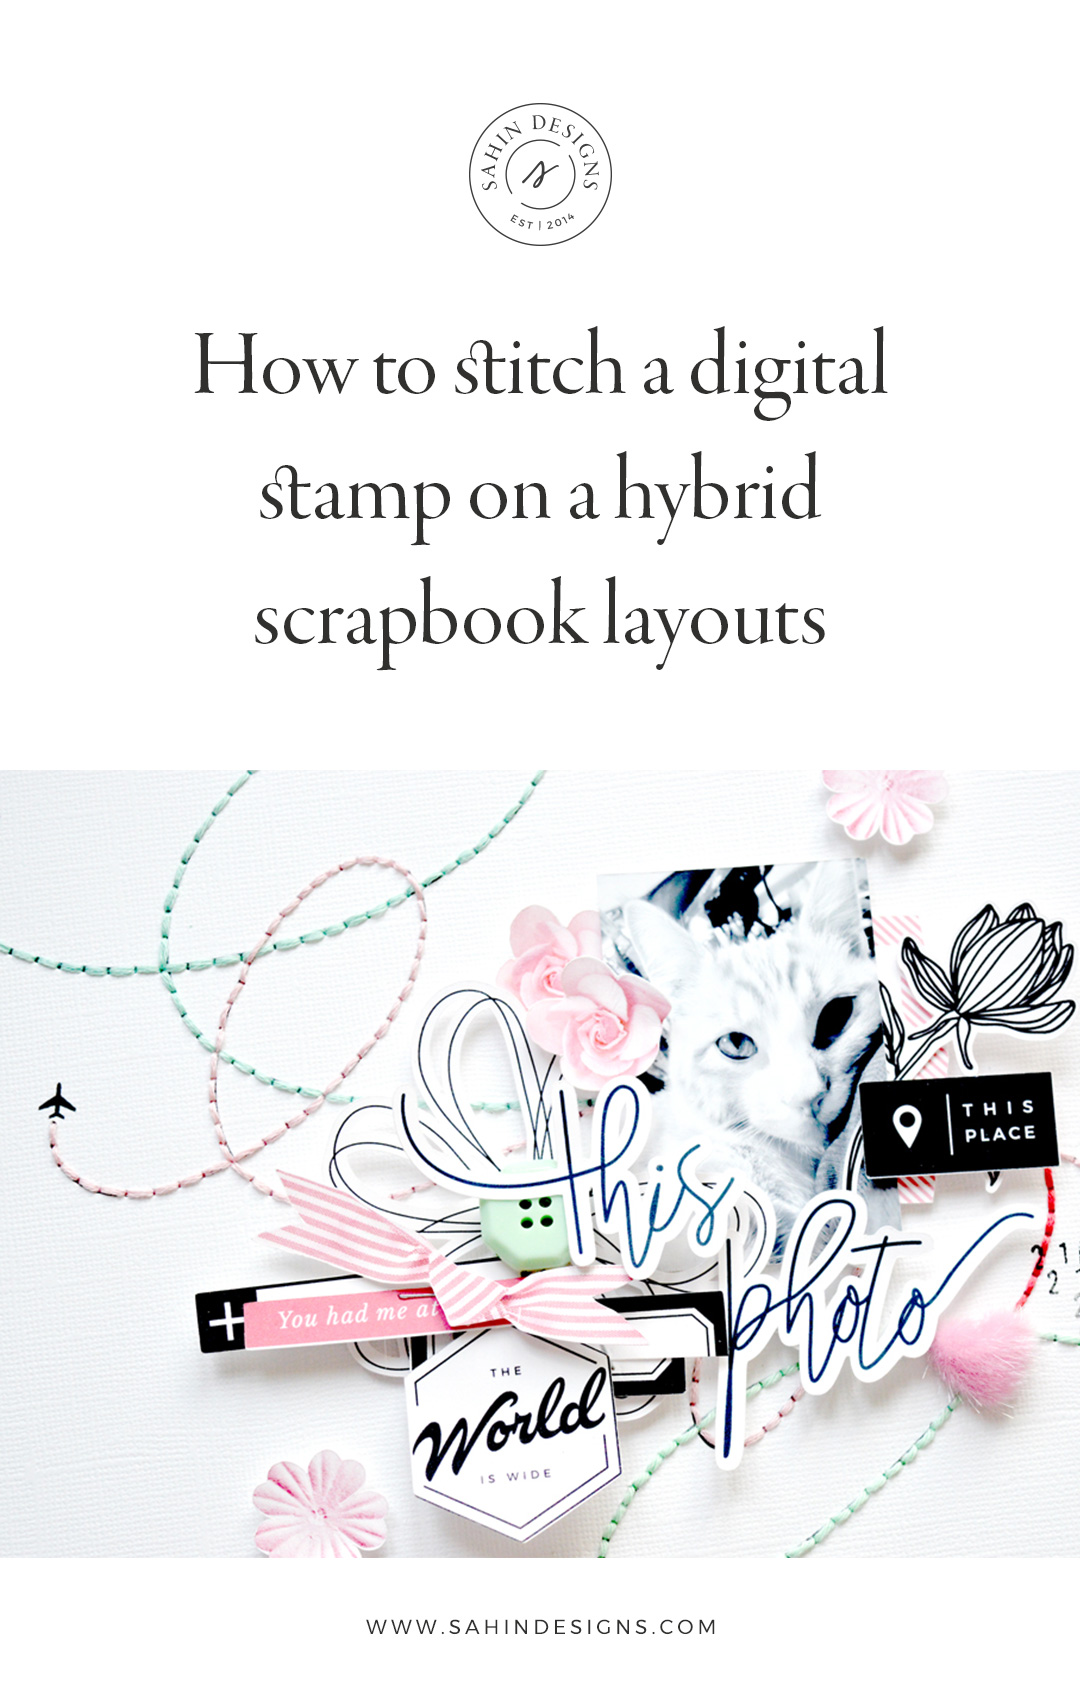 How to stitch a digital stamp on a hybrid scrapbook layout - Sahin Designs